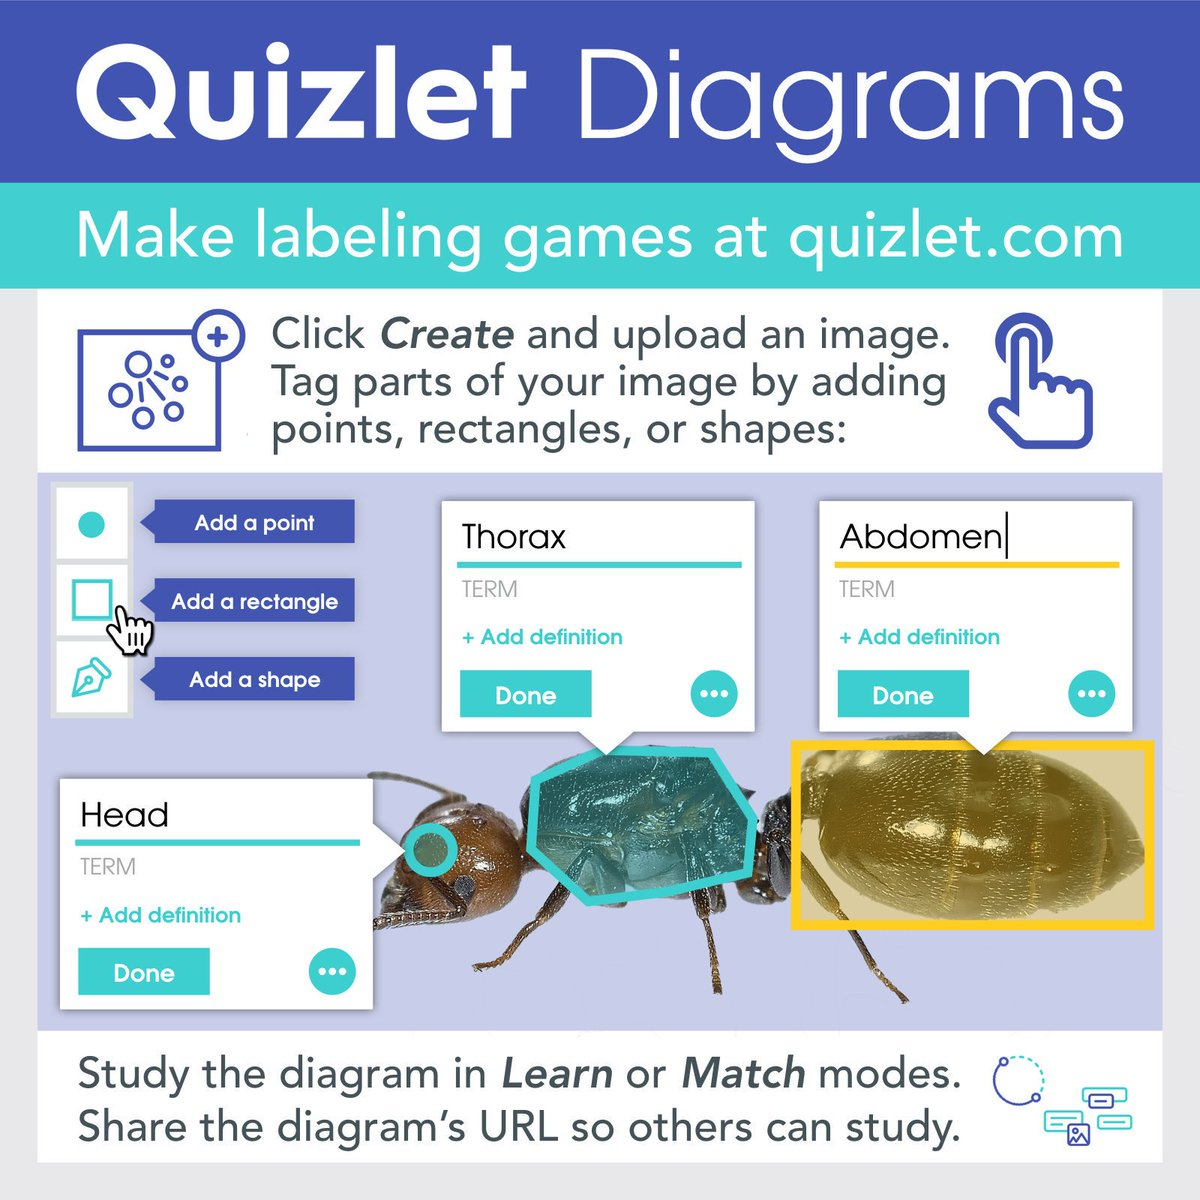 Tony vincent on twitter have you seen quizlet diagrams you tony vincent on twitter have you seen quizlet diagrams you can create study share labeled images gaetc examples advice ccuart Choice Image